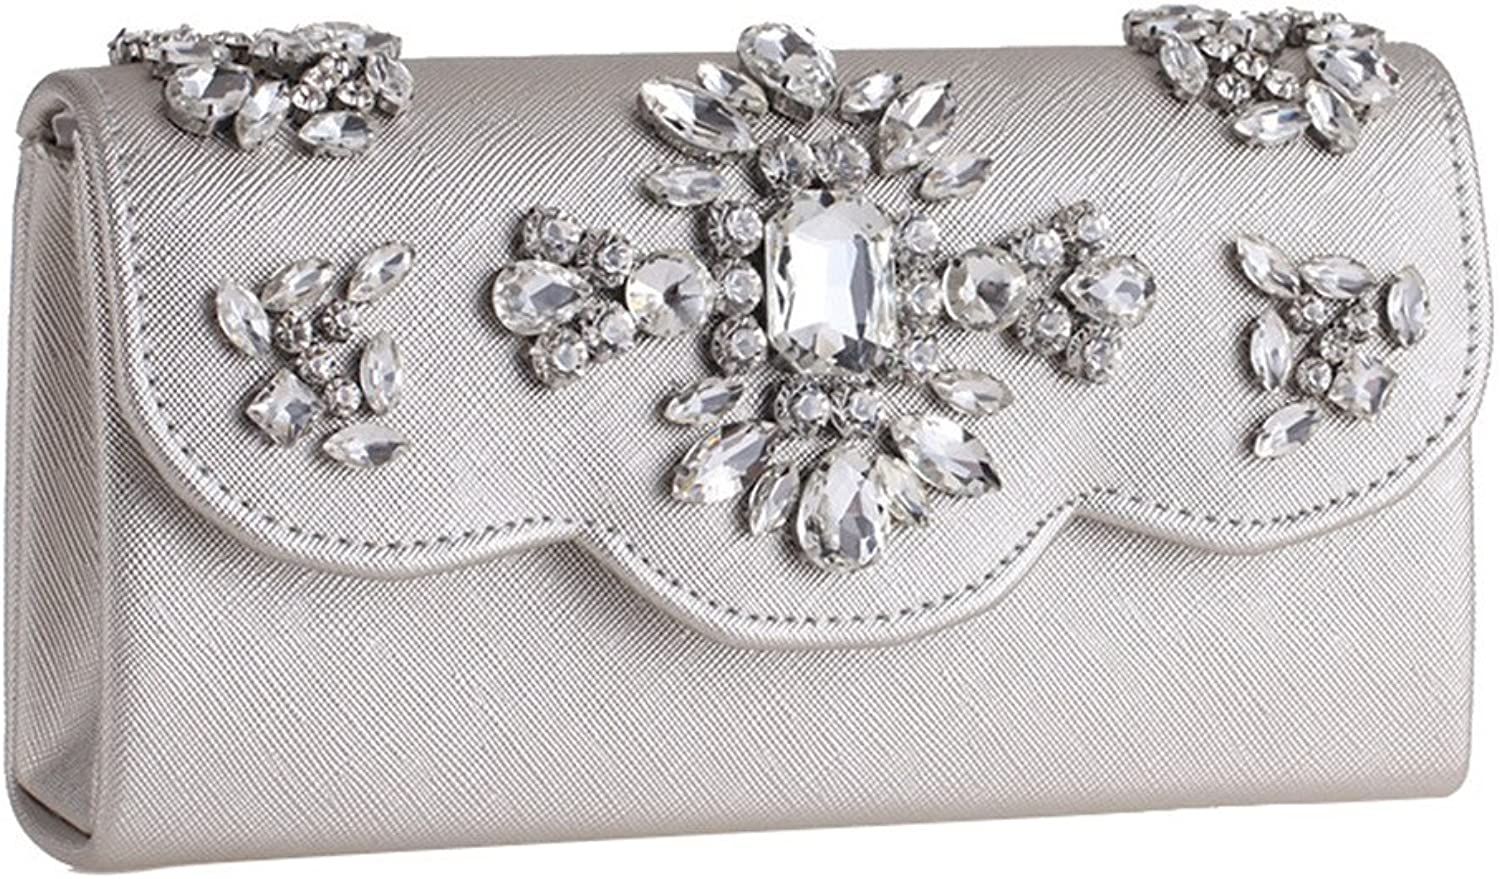 Missfiona Women's Crystal Encrusted PU Leather Evening Clutch Foldover Bar Clasp Casual Shoulder Bag with Detachable Chain